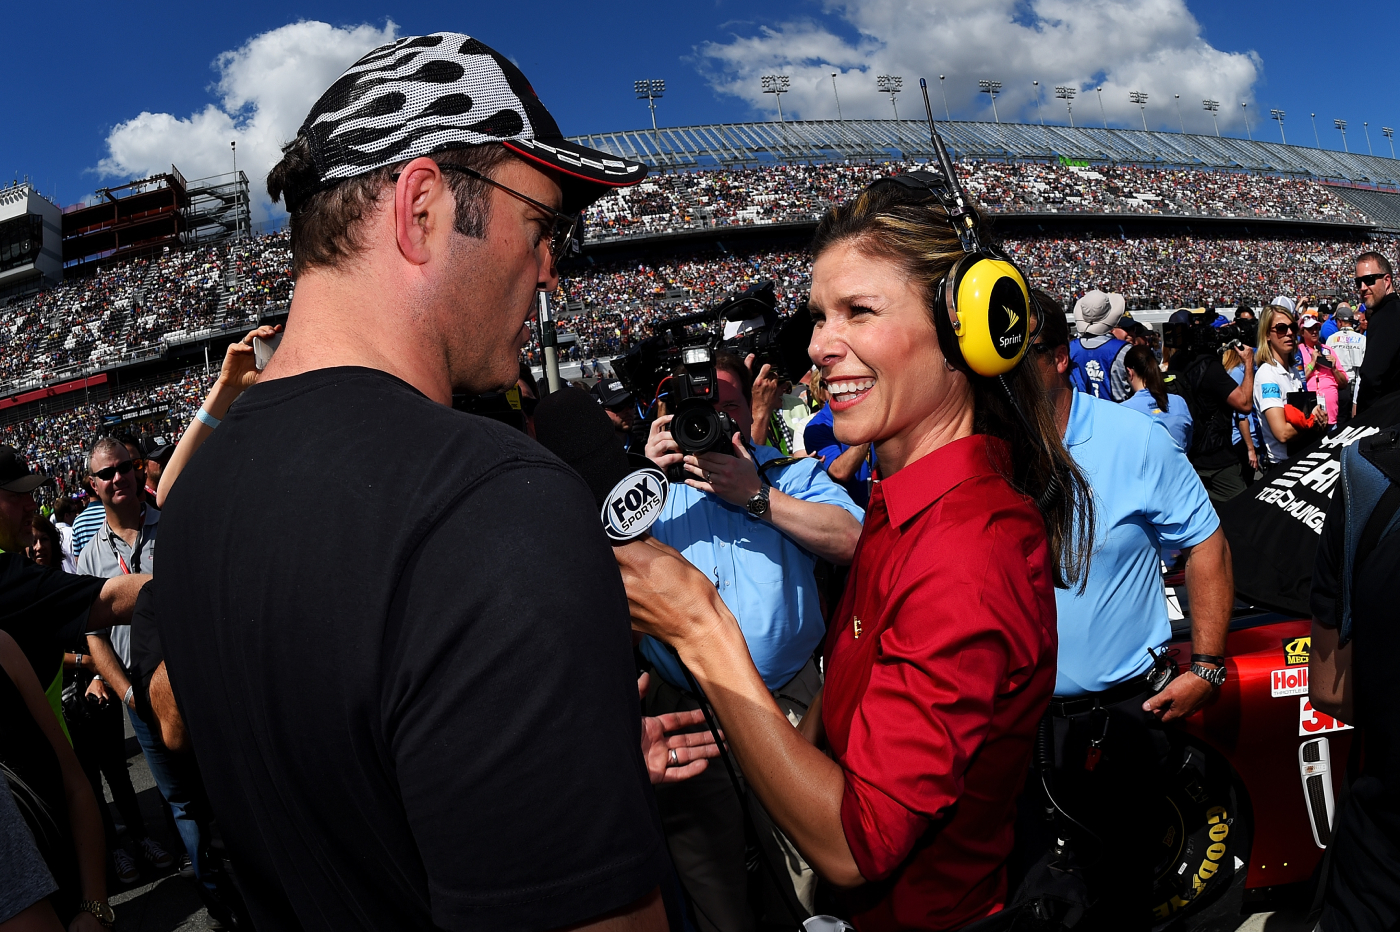 Jamie Little has already made history throughout her career covering NASCAR. She is continuing to do that even more so now with her new job.